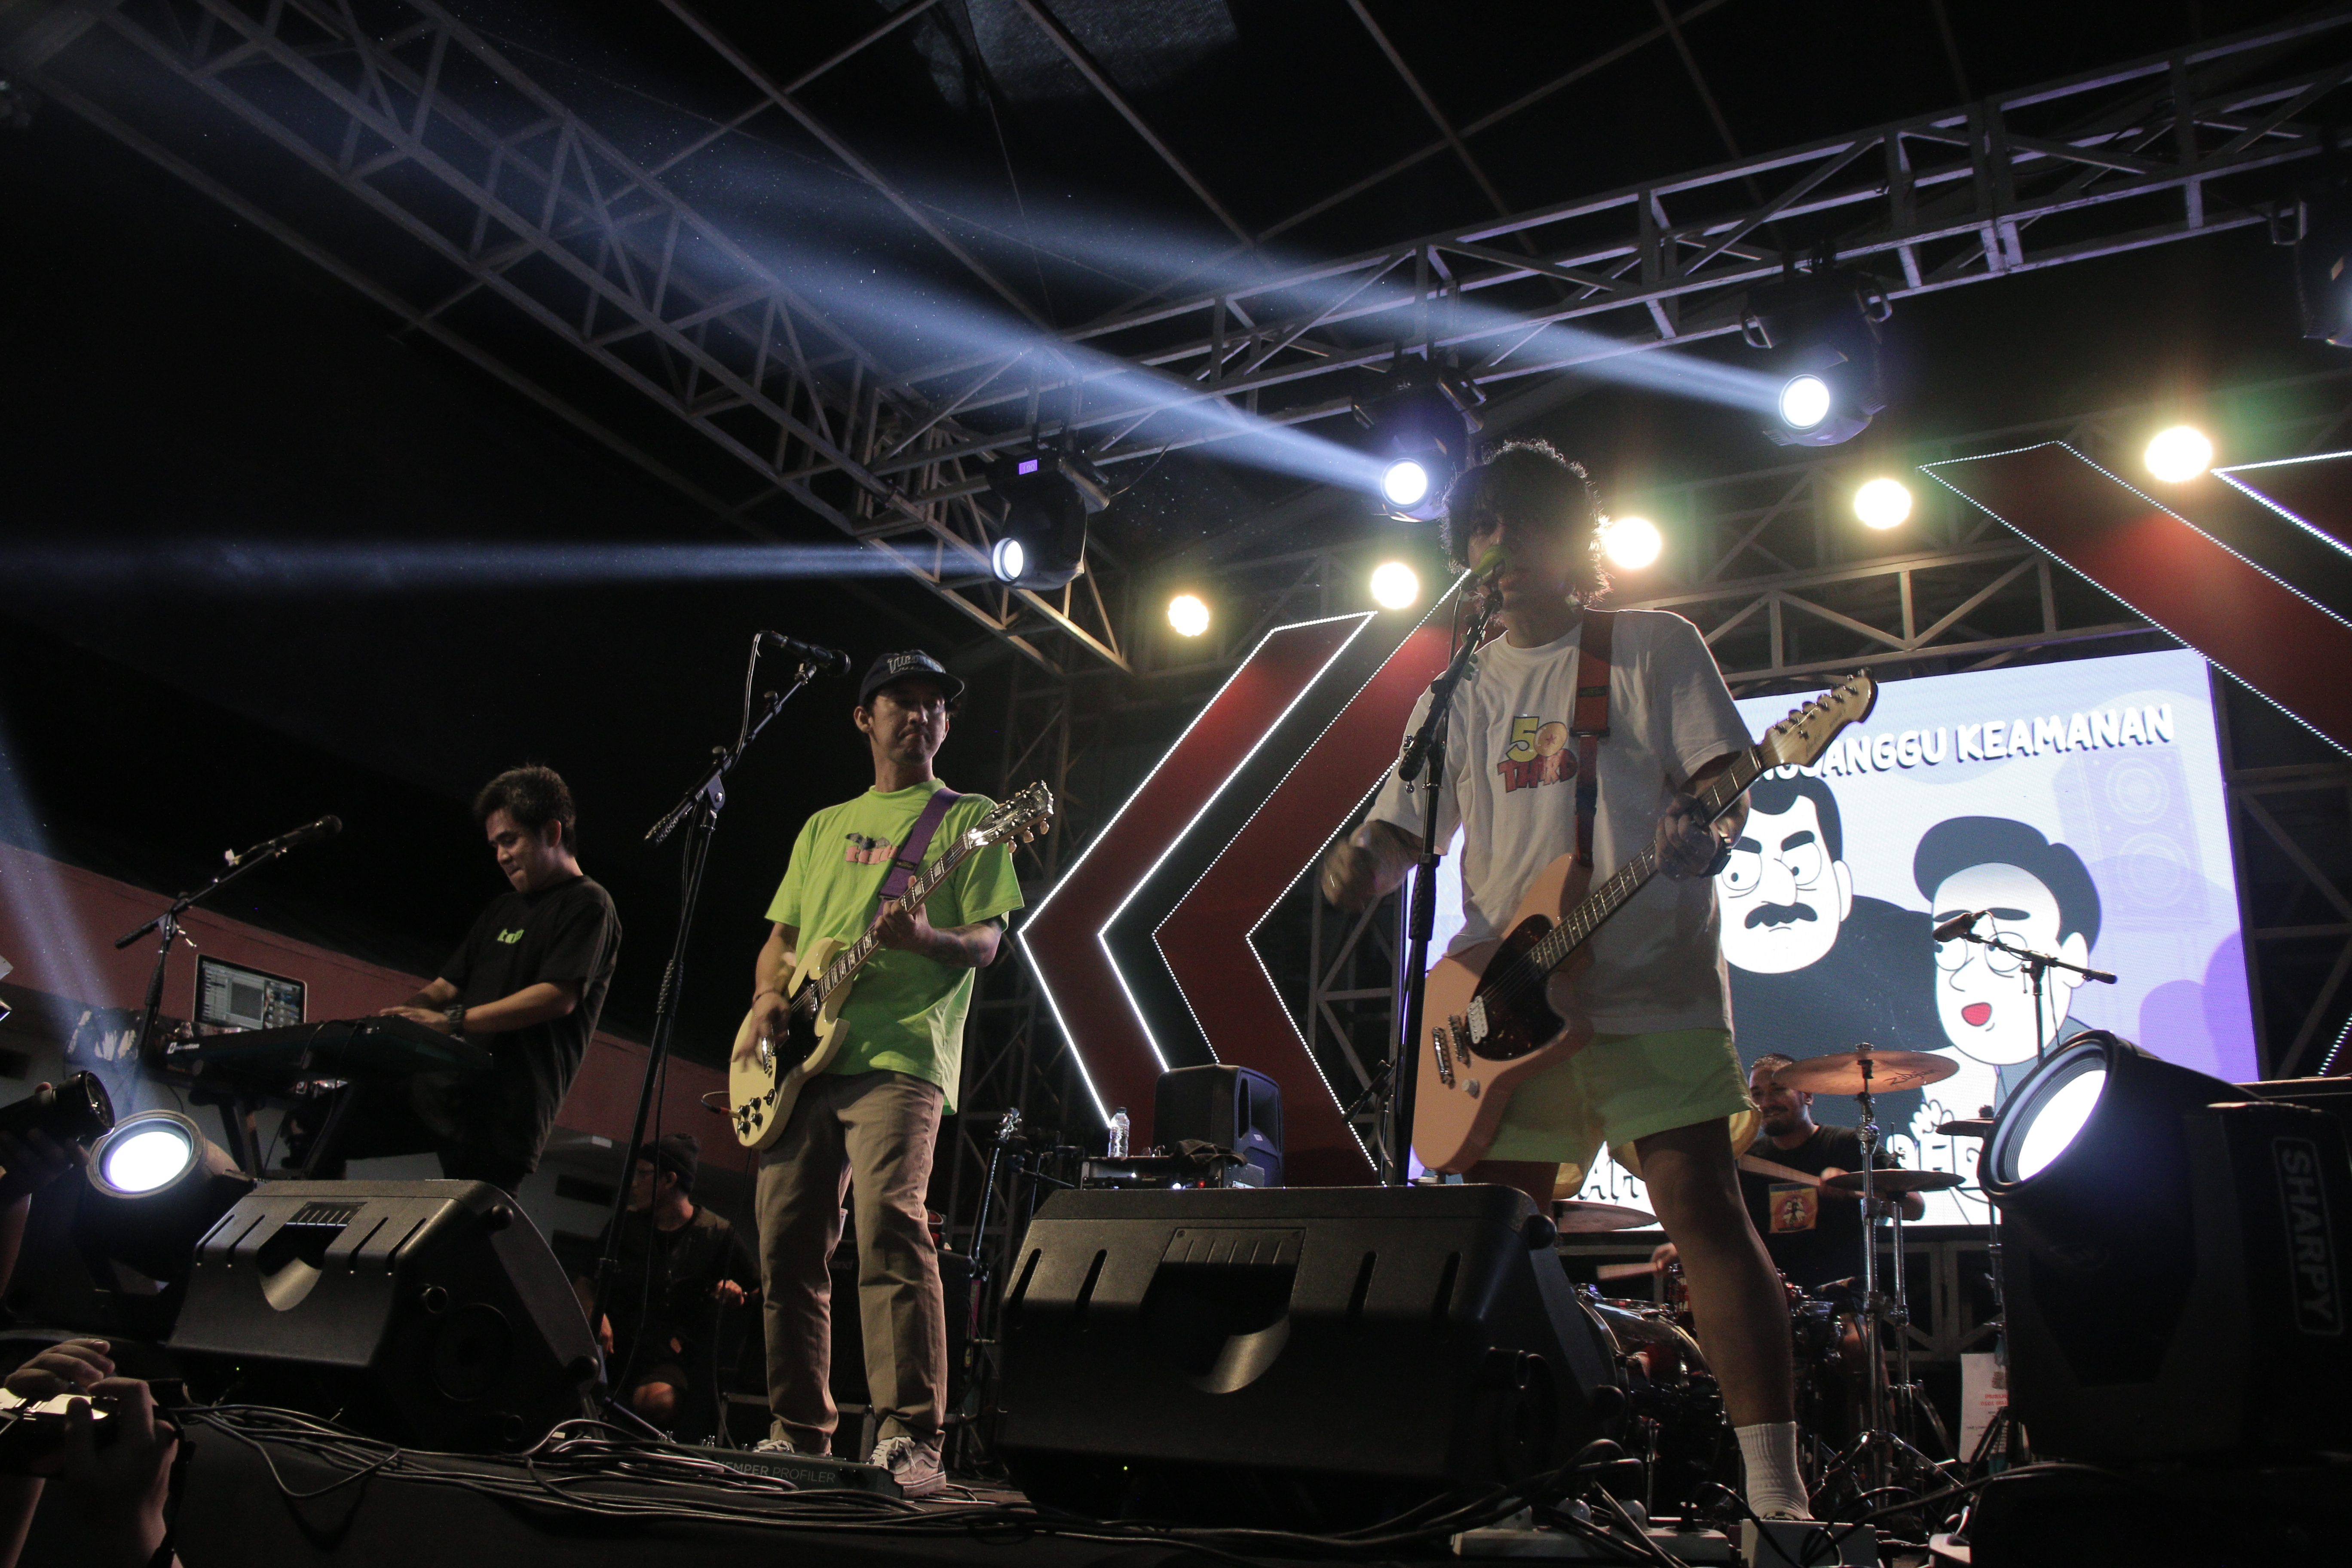 JLive with Pee Wee Gaskins